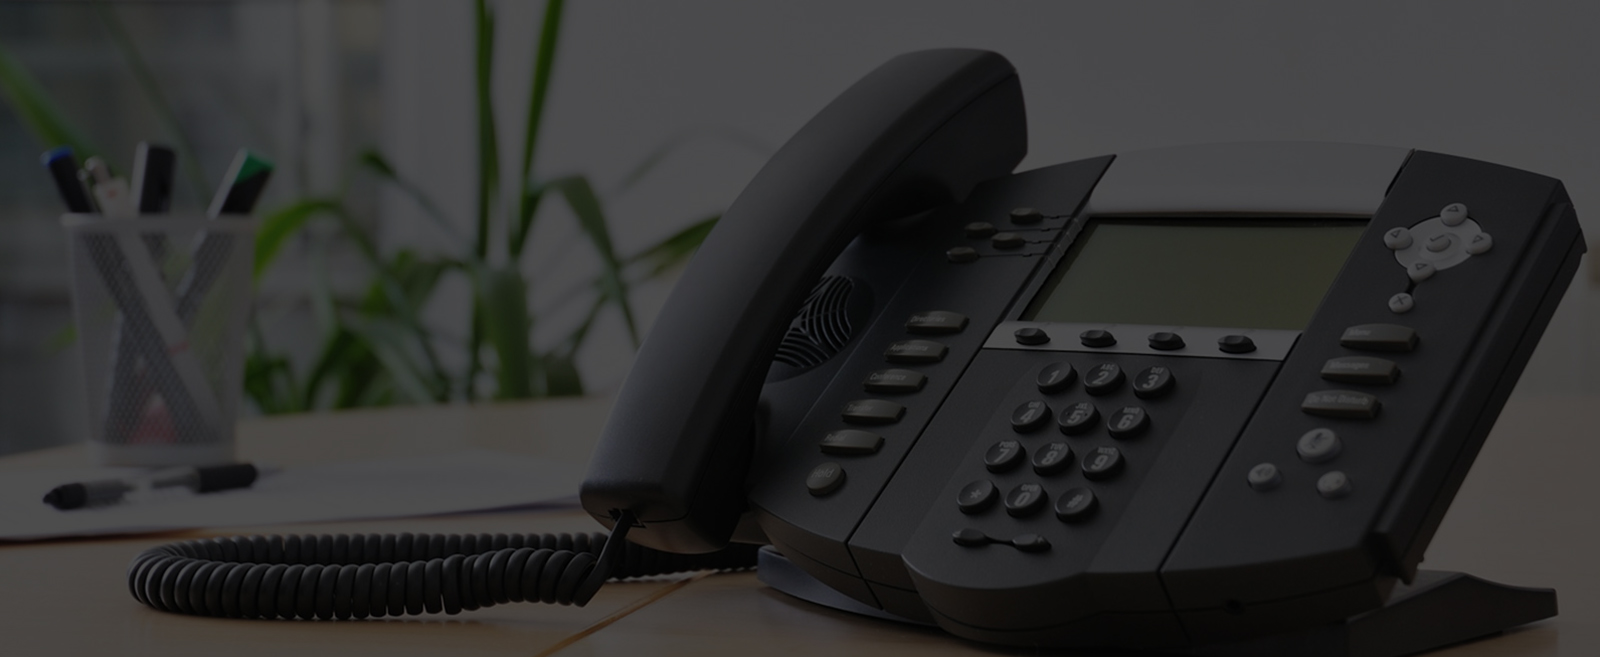 Voip Services for Call Centers